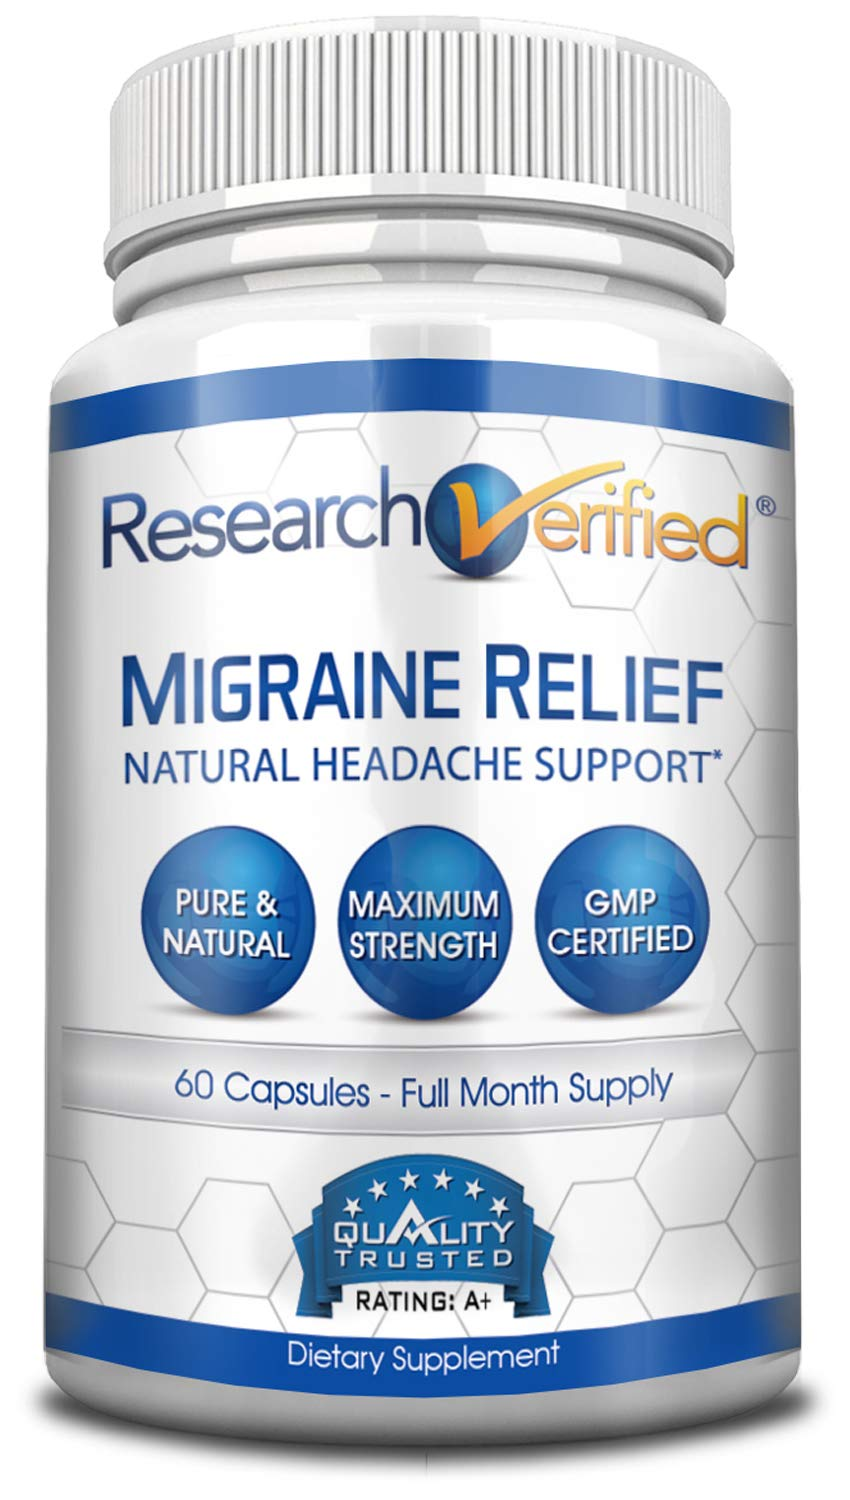 Research Verified Migraine Relief - 1 Bottle - Top Migraine Relief - with Riboflavin, Magnesium, Feverfew and Niacin. Reduces Severity and Duration of migraine Attacks. 100% Money Back Guarantee!